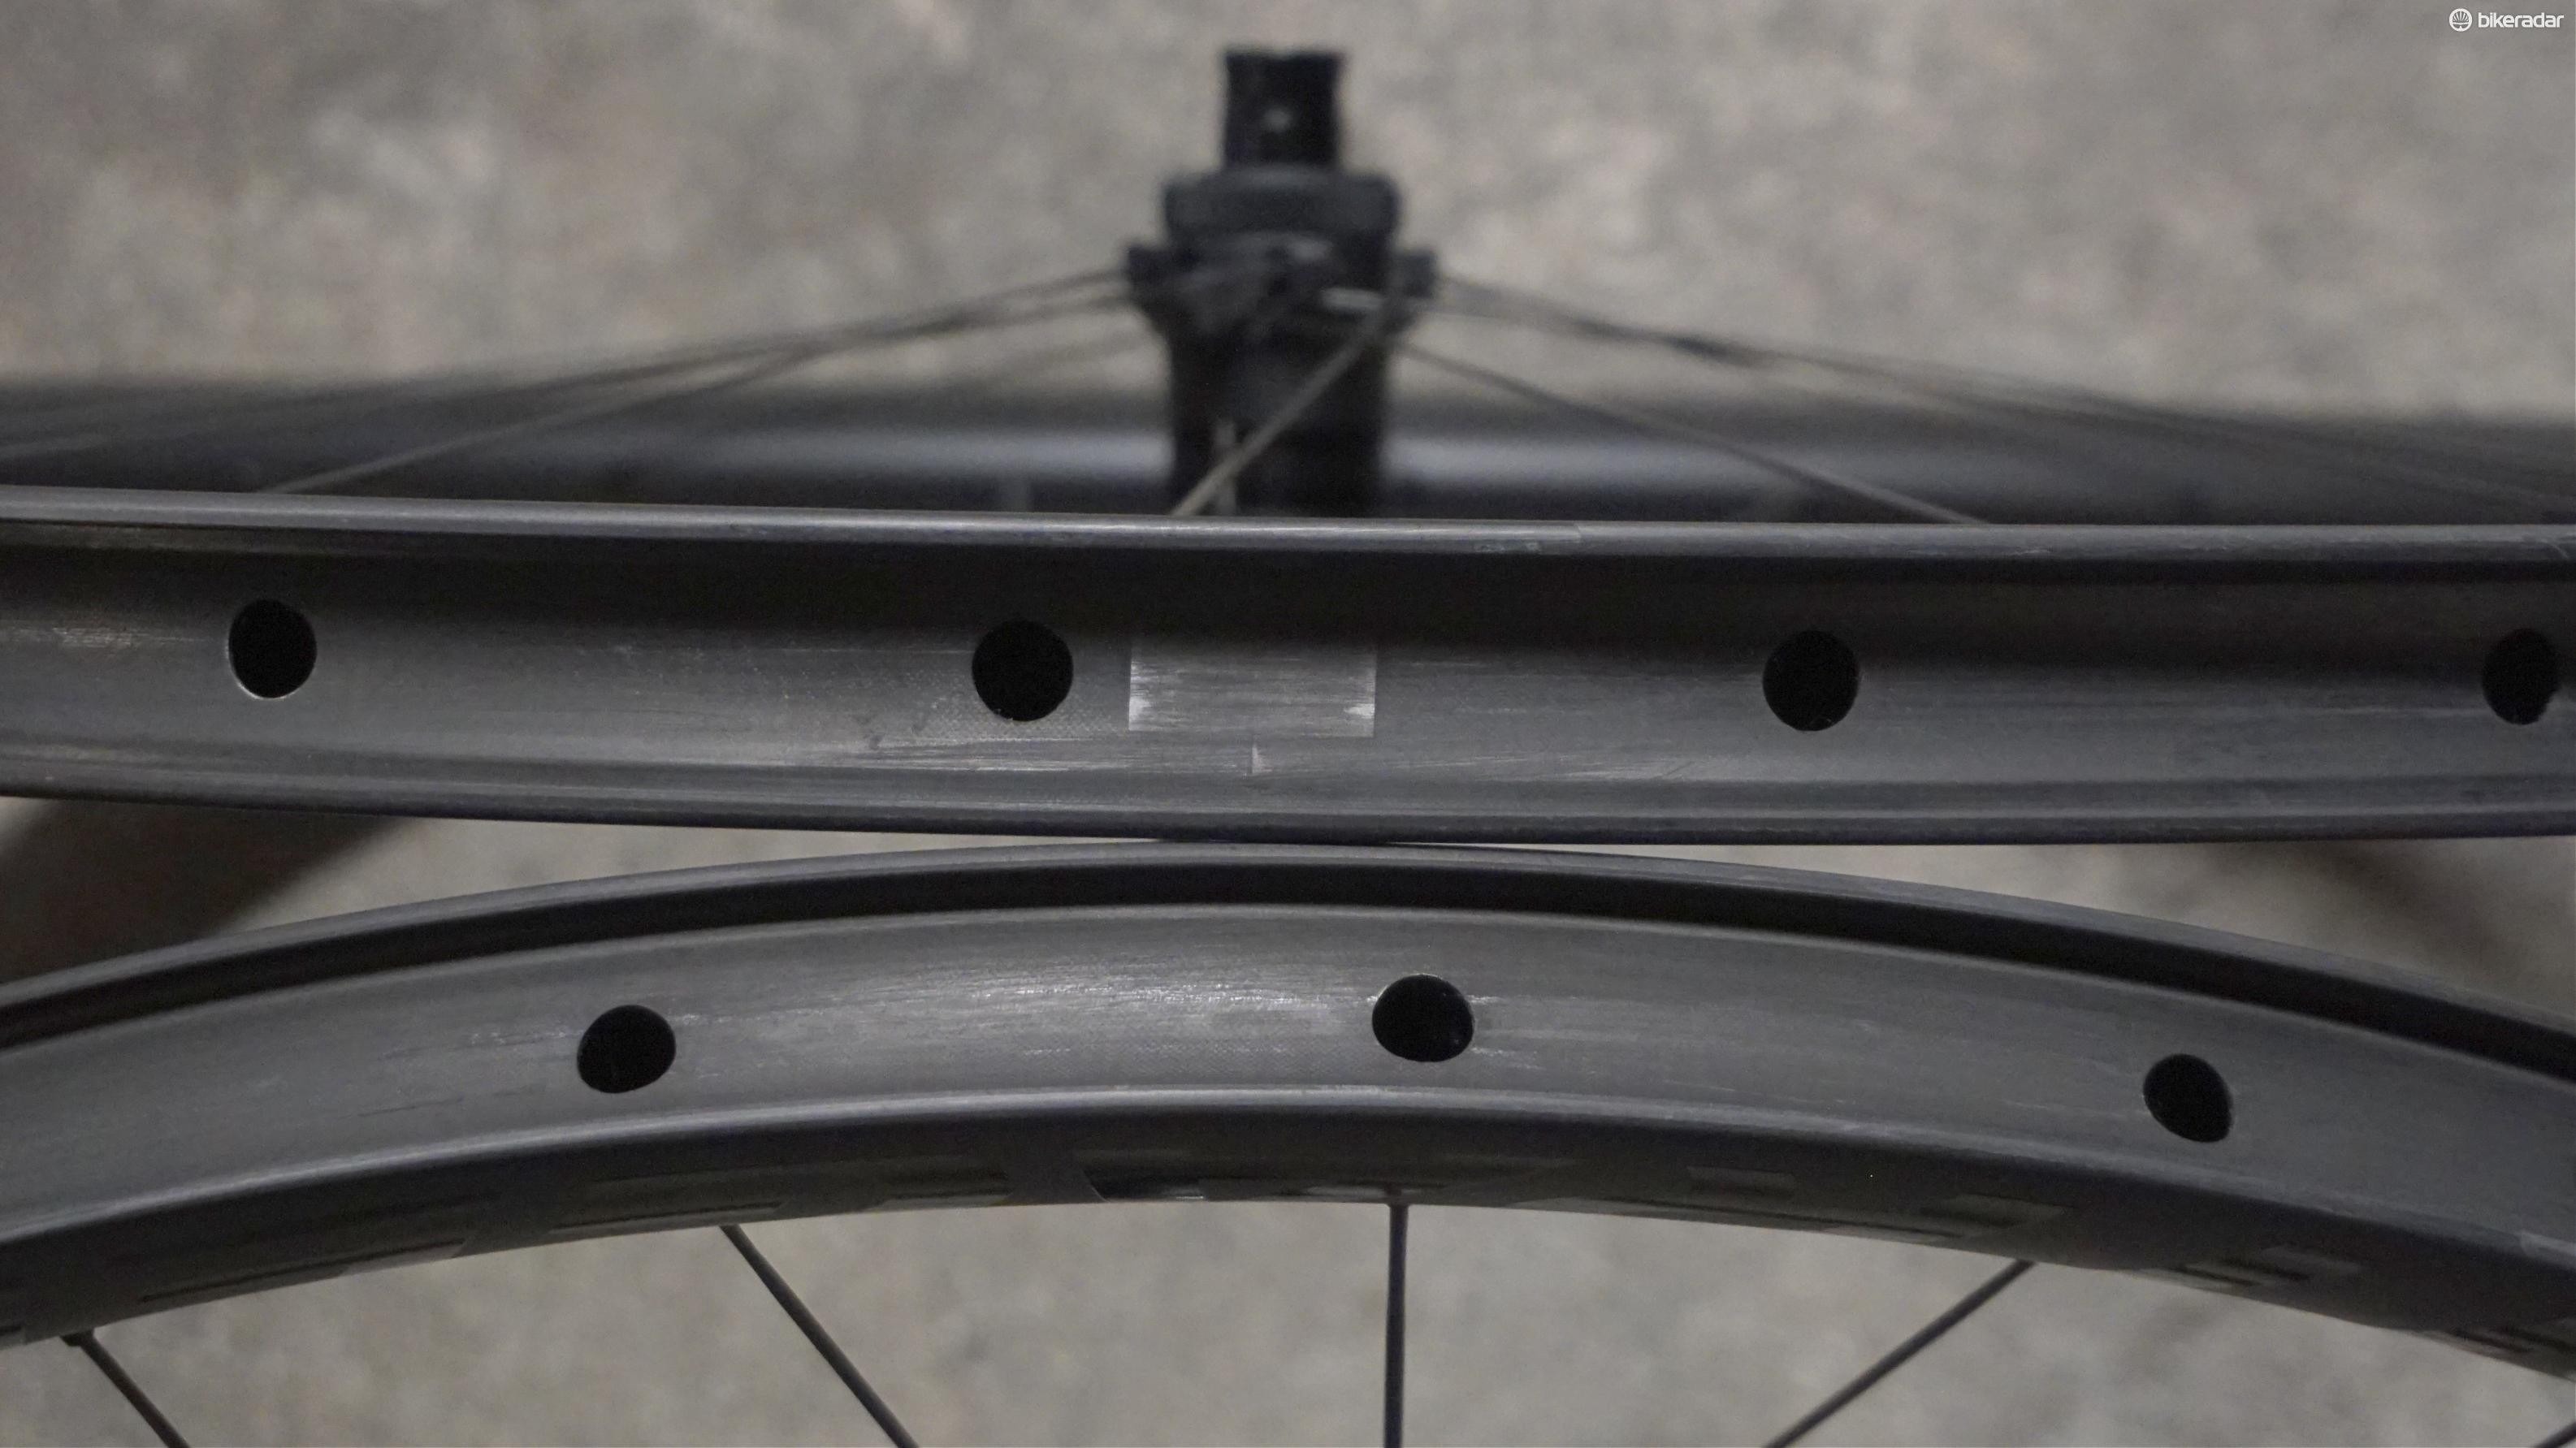 The 25mm internal rim width is designed for 32mm tyres and up